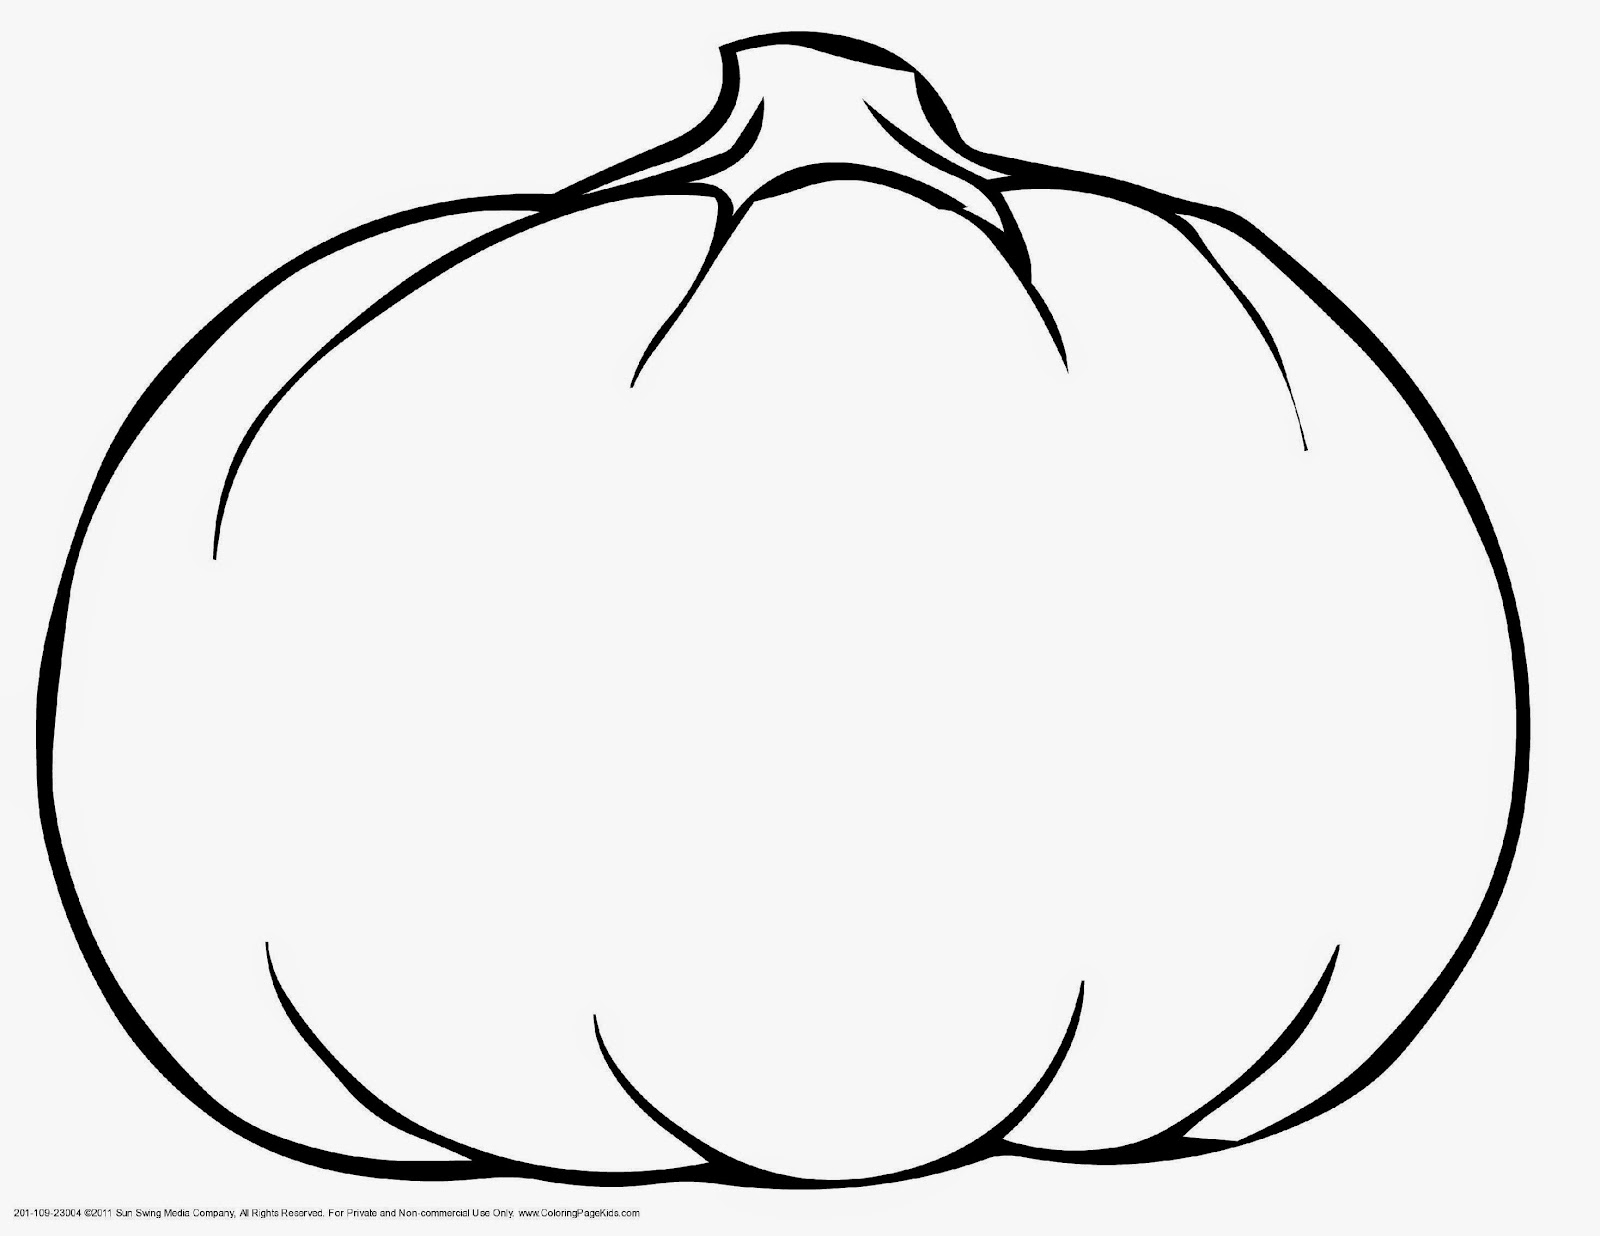 Pumpkin coloring sheet free coloring sheet for Coloring pages pumpkin free